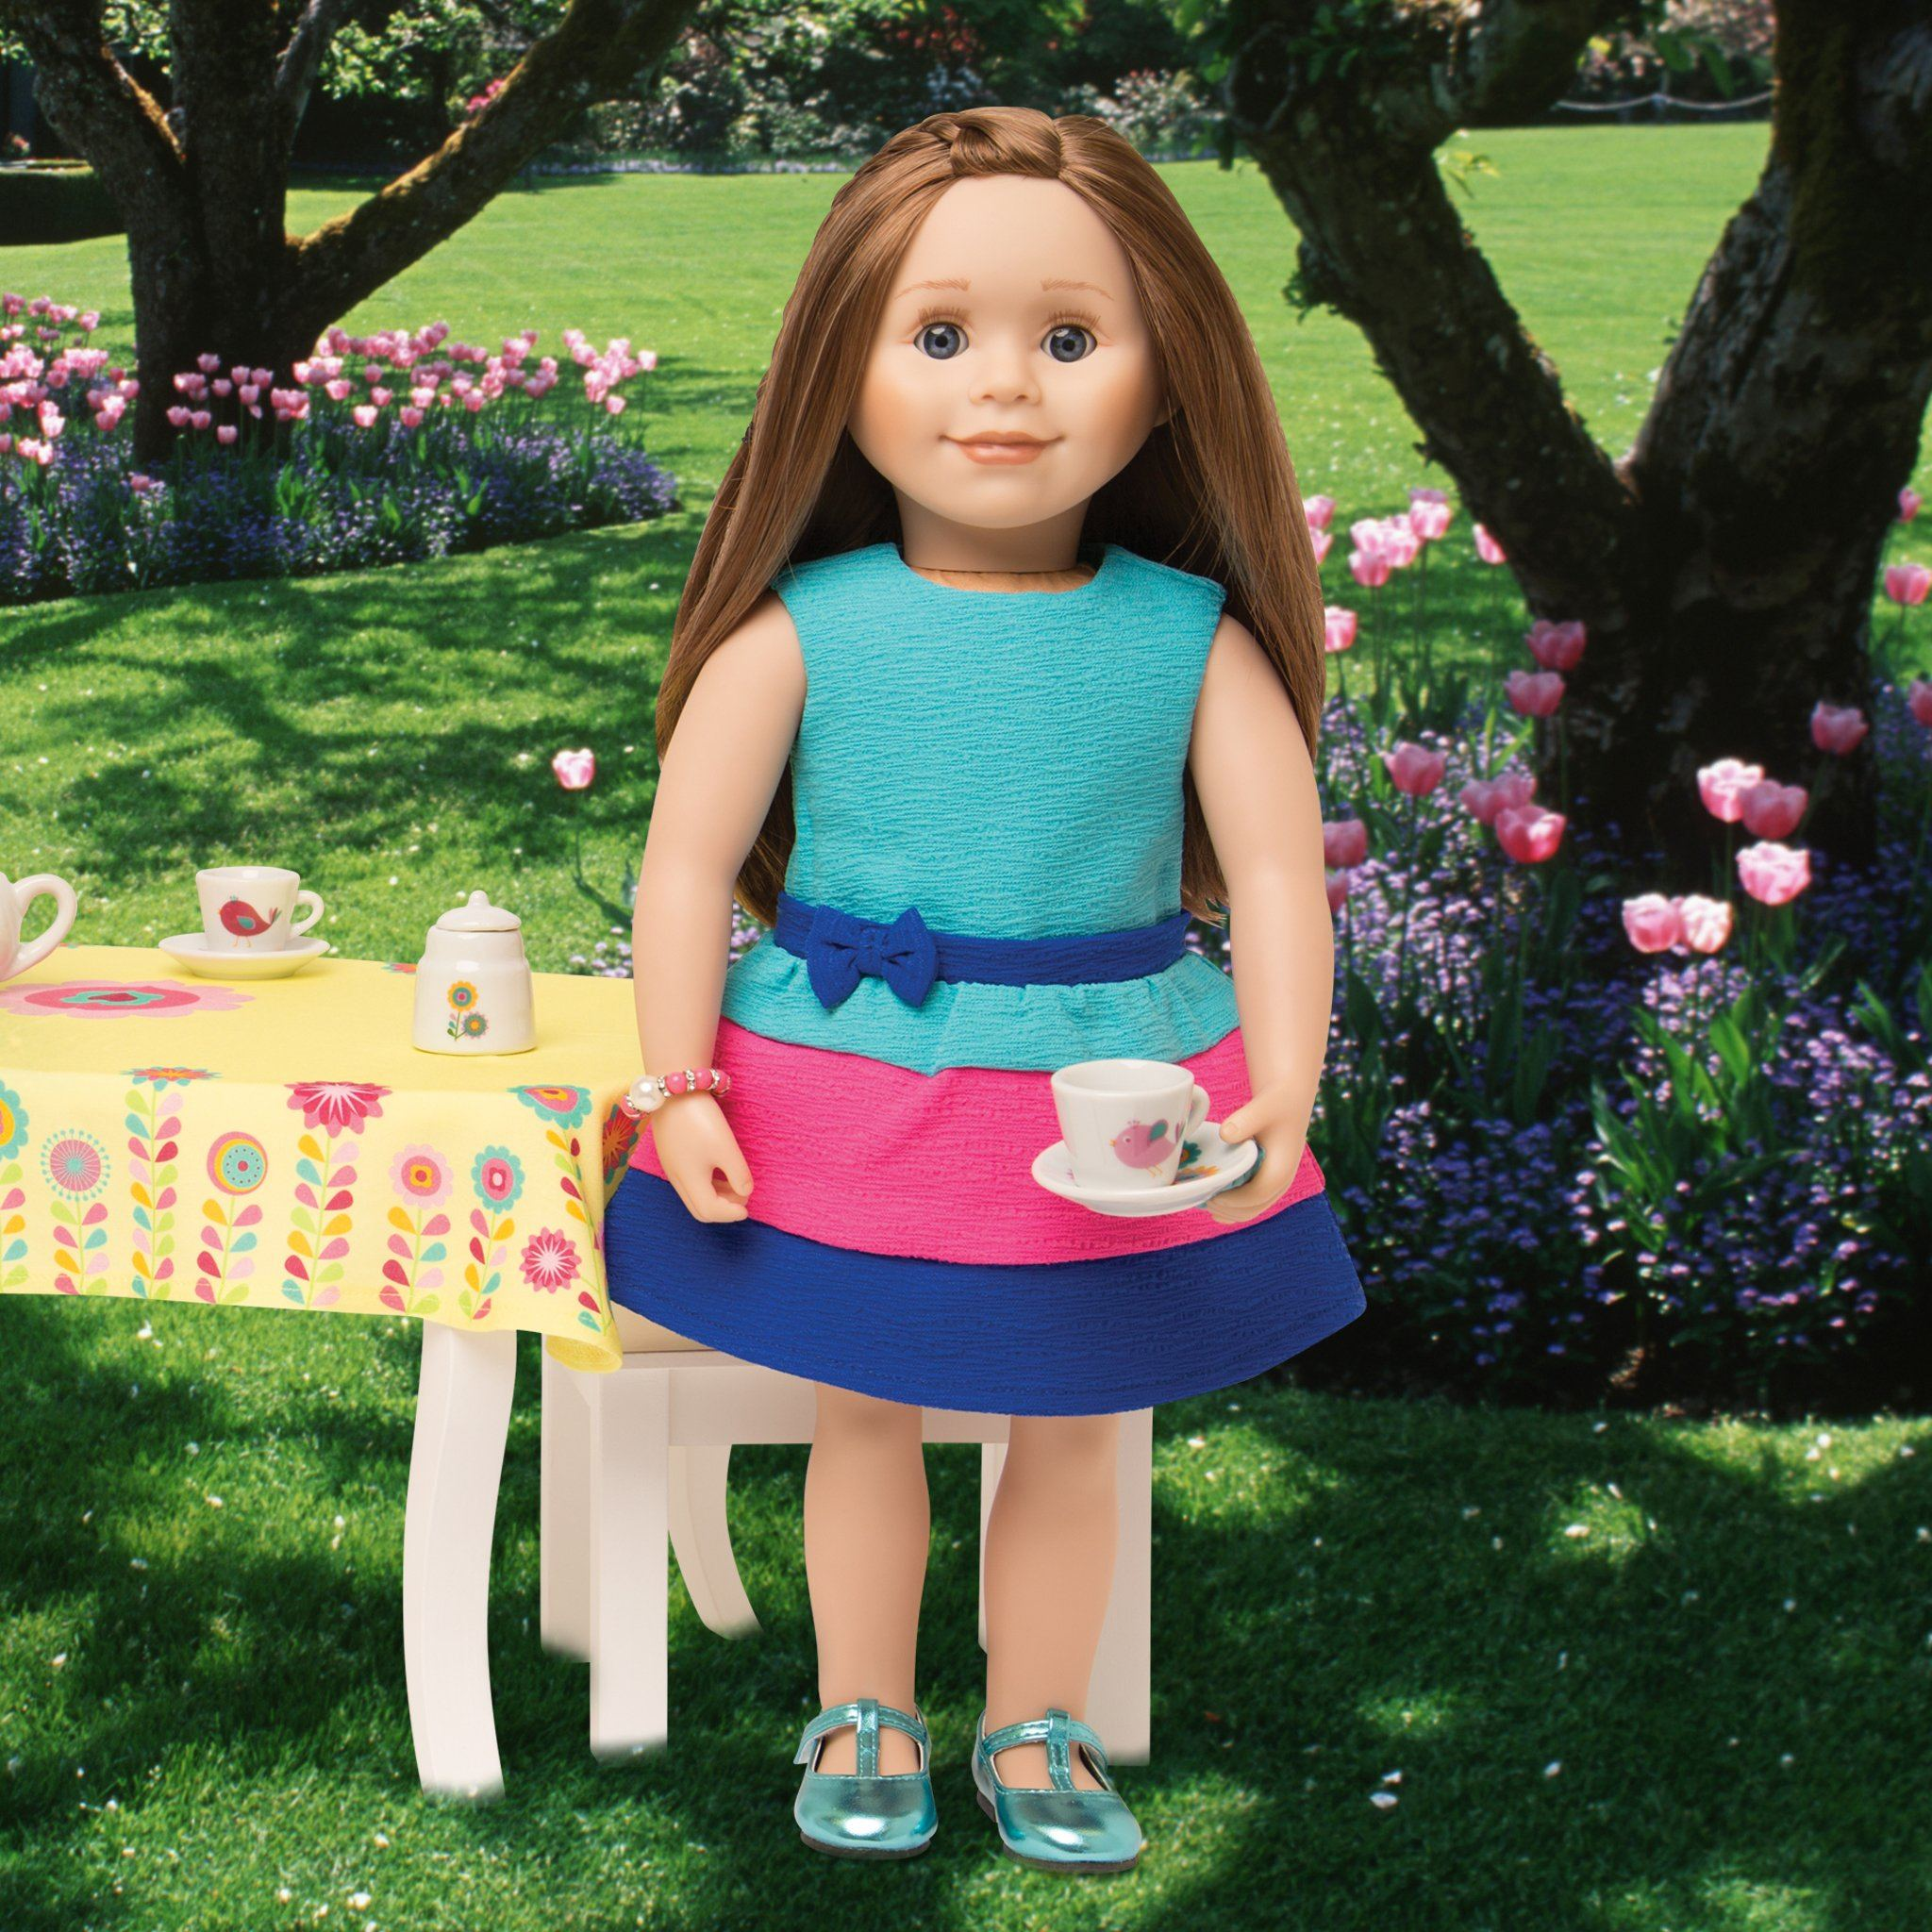 Summer dress, bracelet and blue shoes worn by 18 inch doll at a tea party.